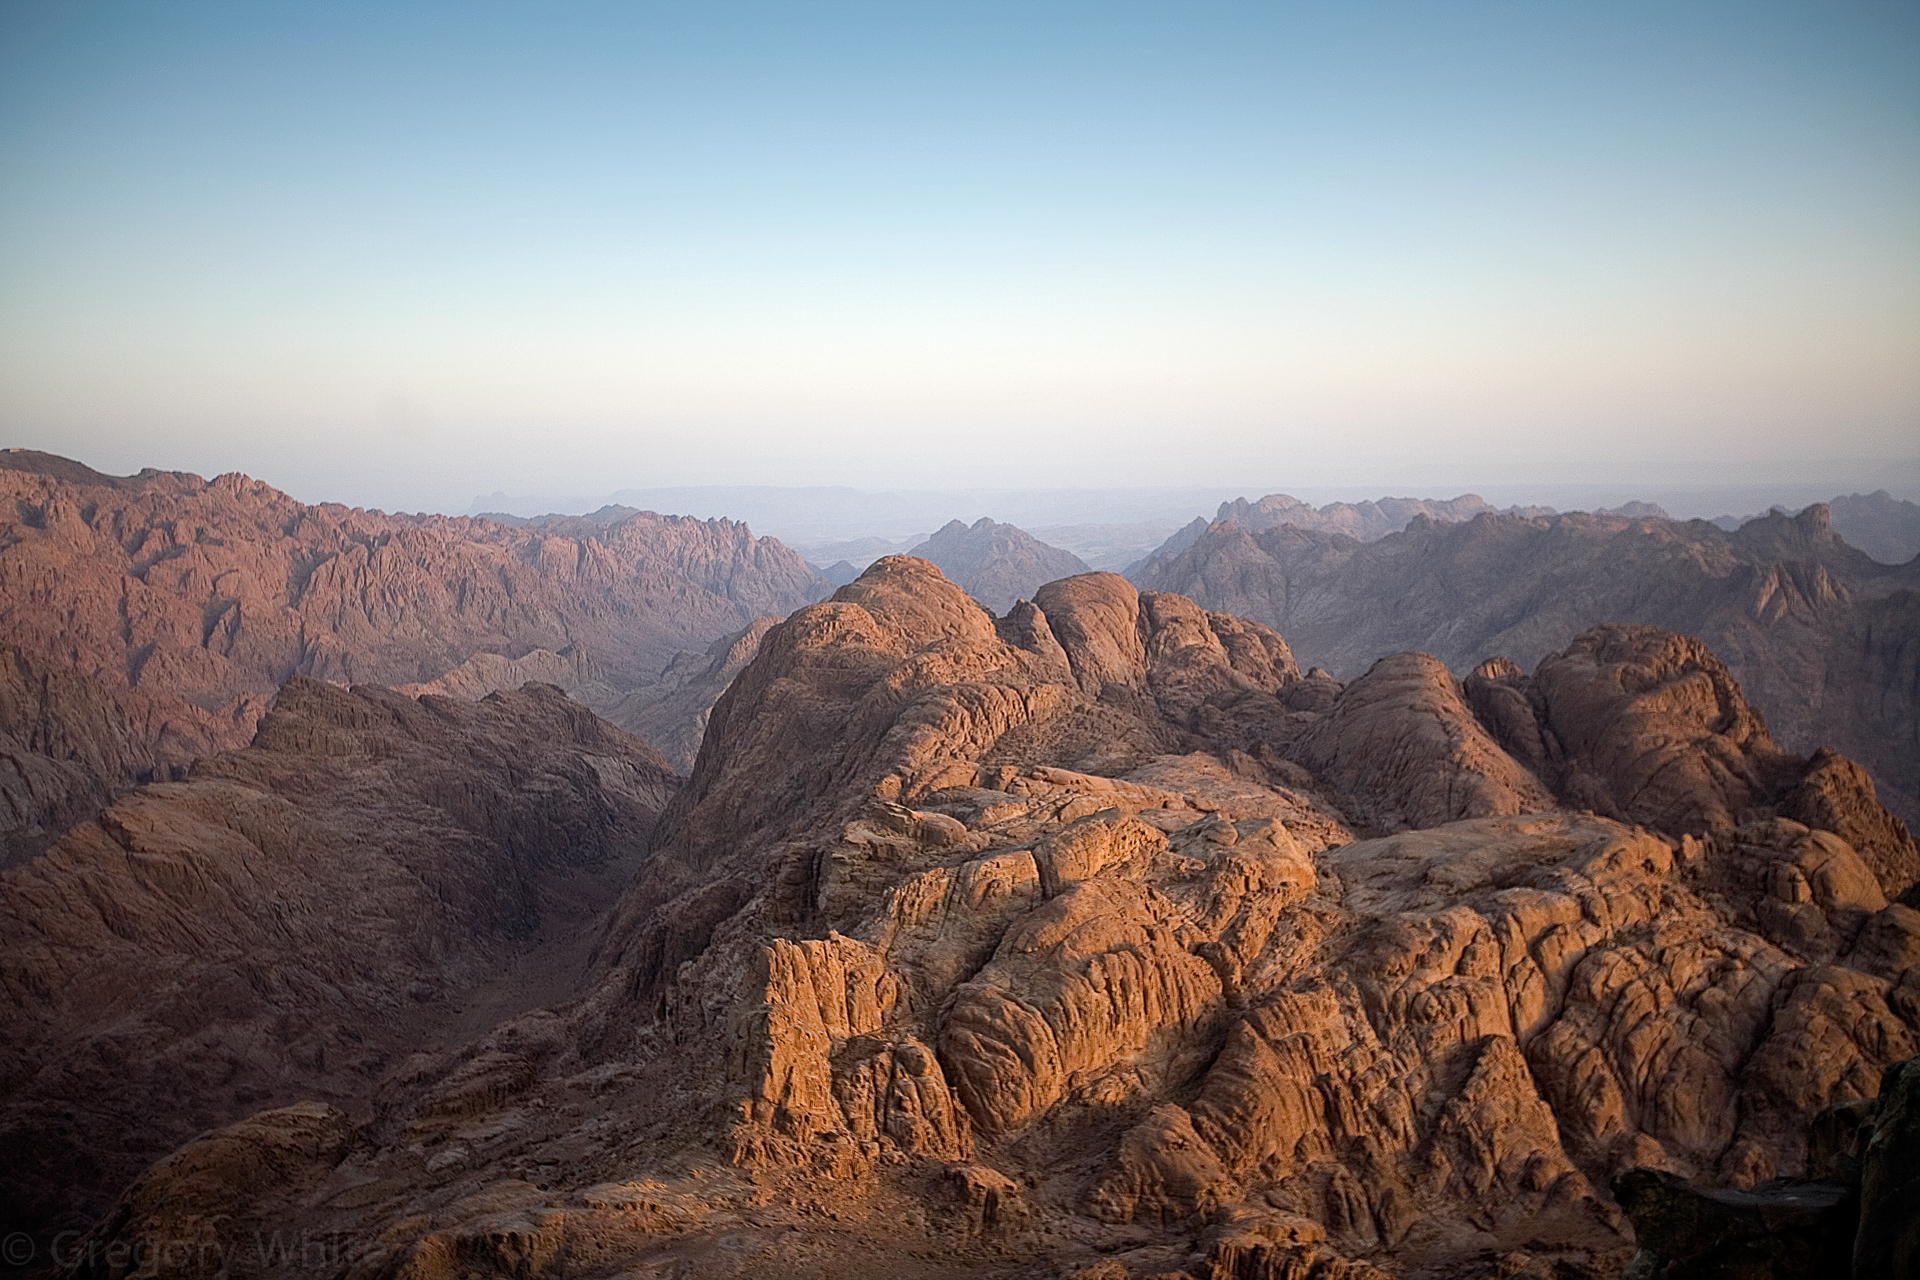 The view from the top of Mt. Sinai at sunrise.   Yes, THAT Mt Sinai.